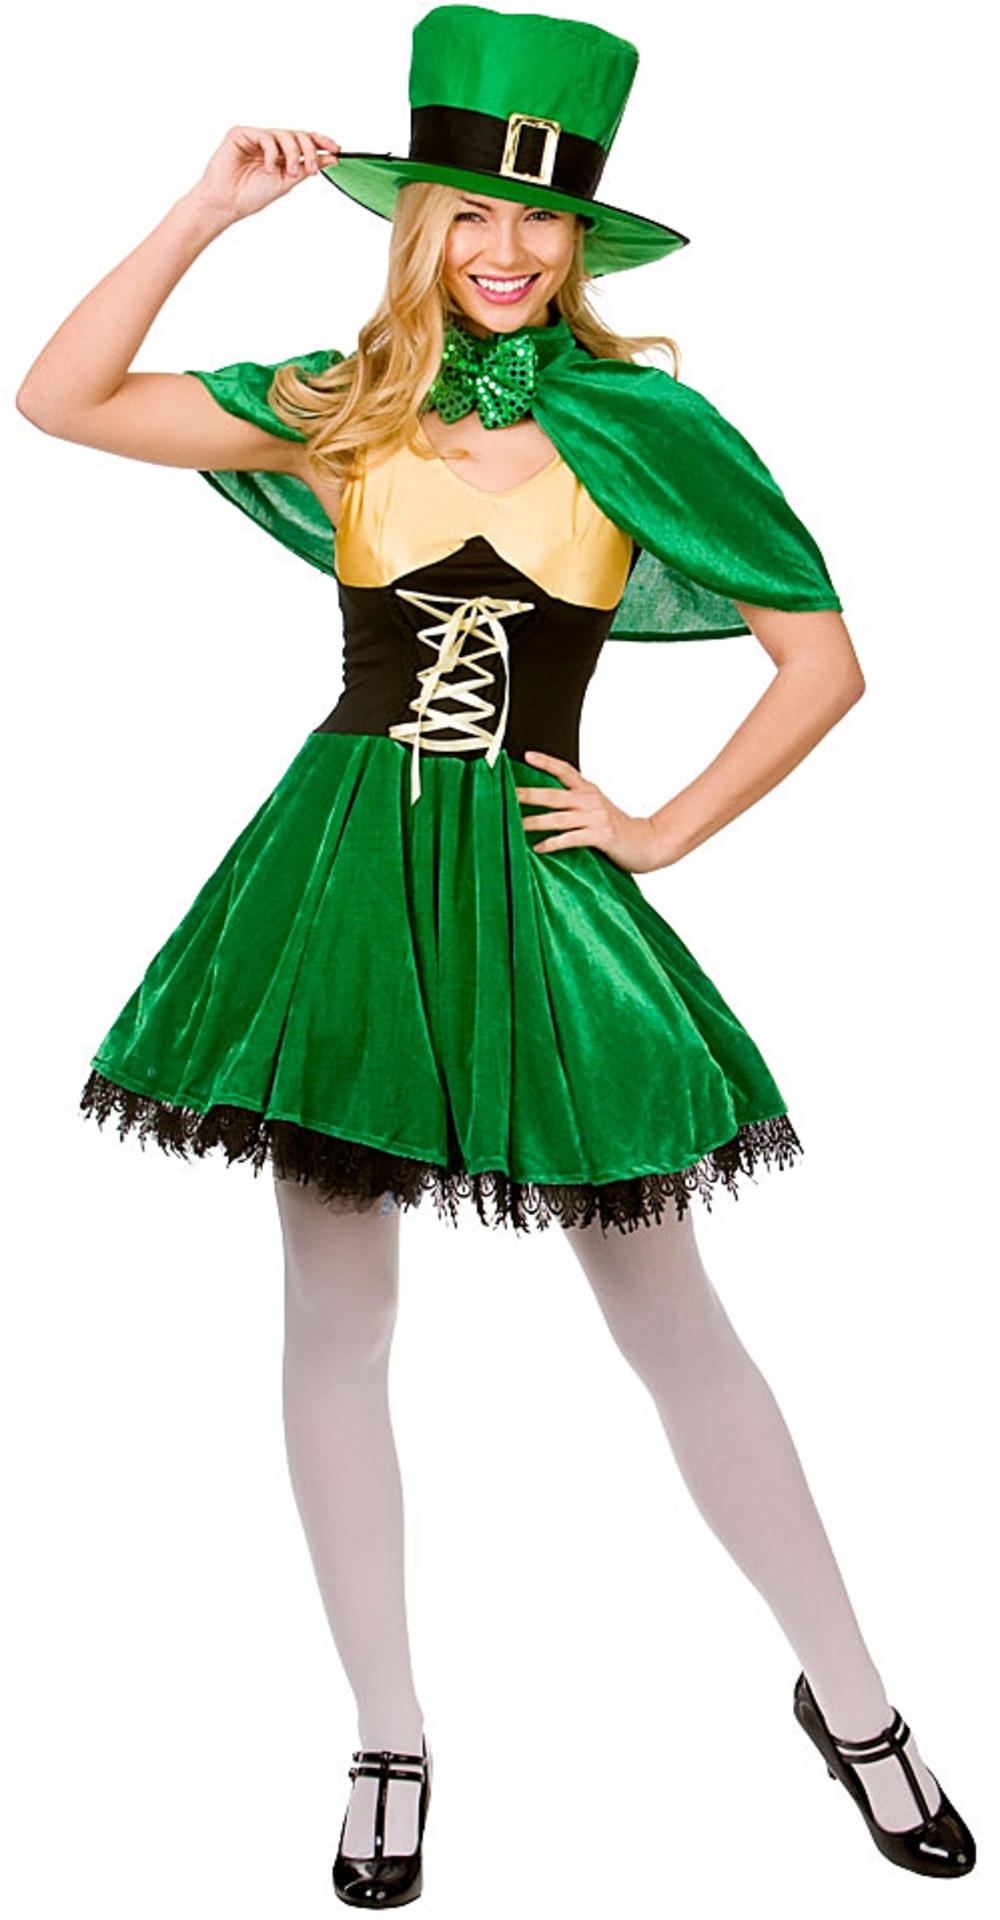 Irish Lucky Leprechaun St Patricku0027s Day Costume  sc 1 st  Mega Fancy Dress & Irish Lucky Leprechaun St Patricku0027s Day Costume | All Ladies ...